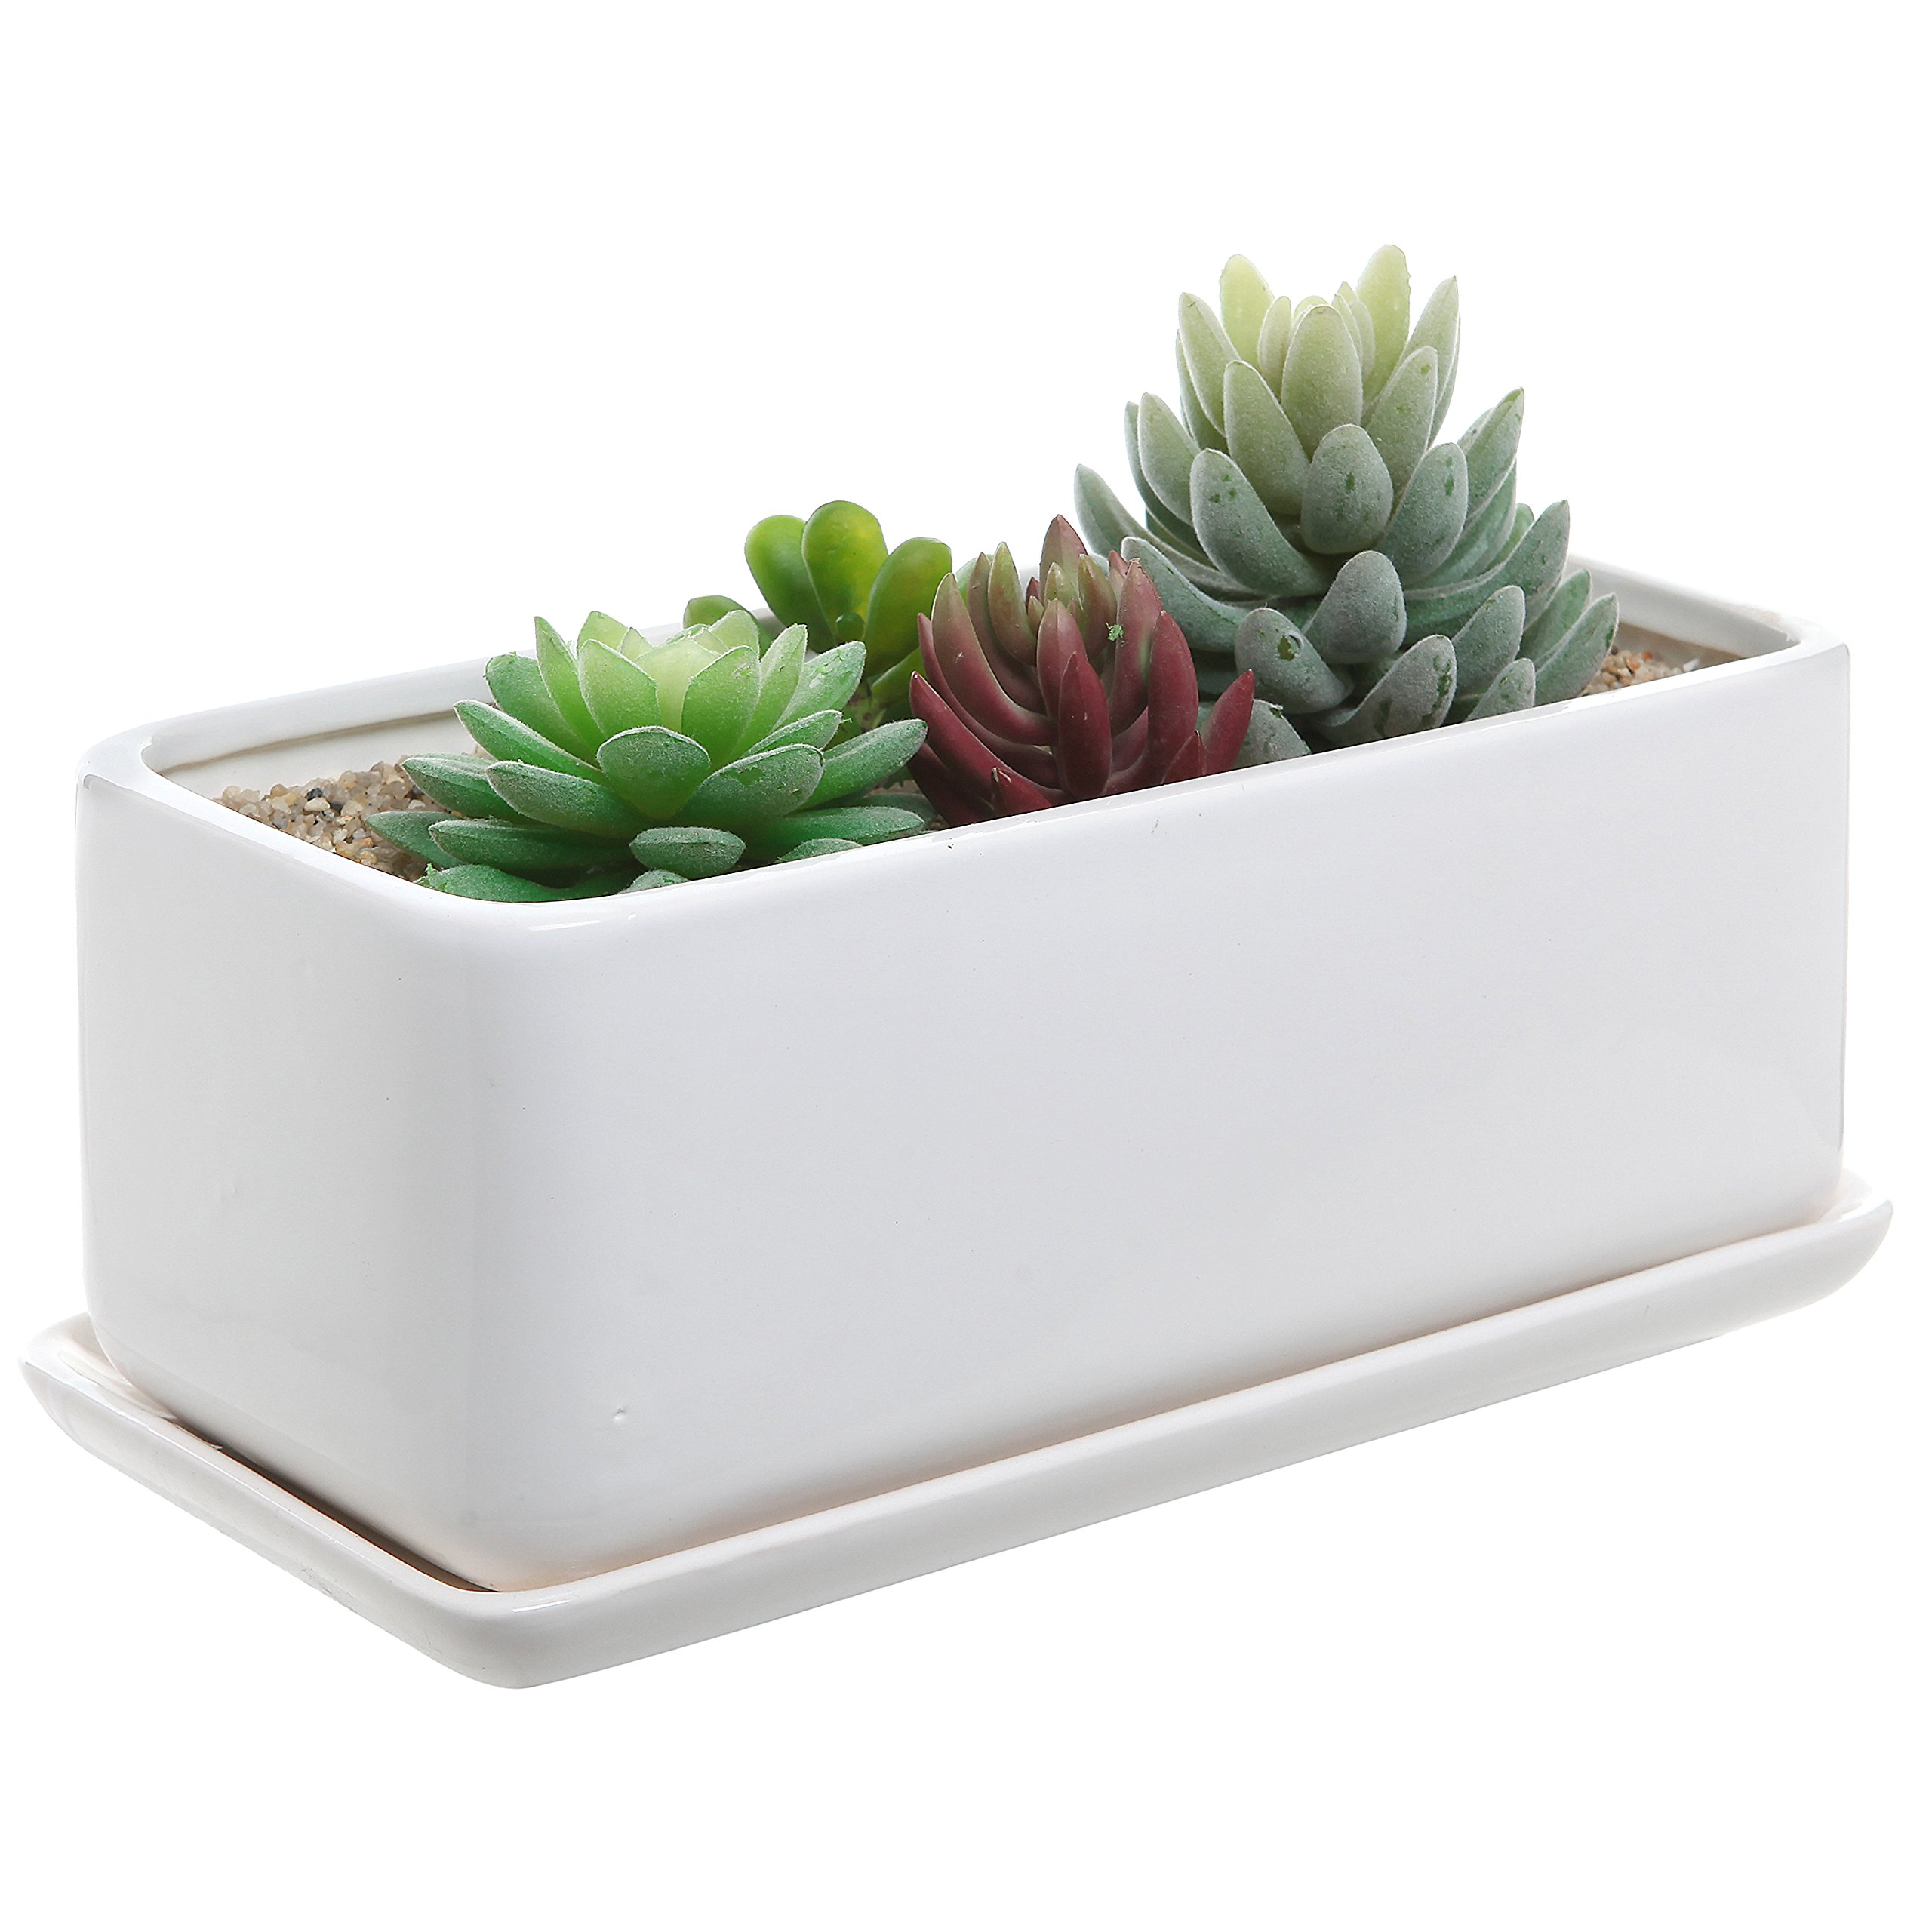 10 inch Rectangular Modern Minimalist White Ceramic Succulent Planter Pot/Window Box with Saucer by MyGift